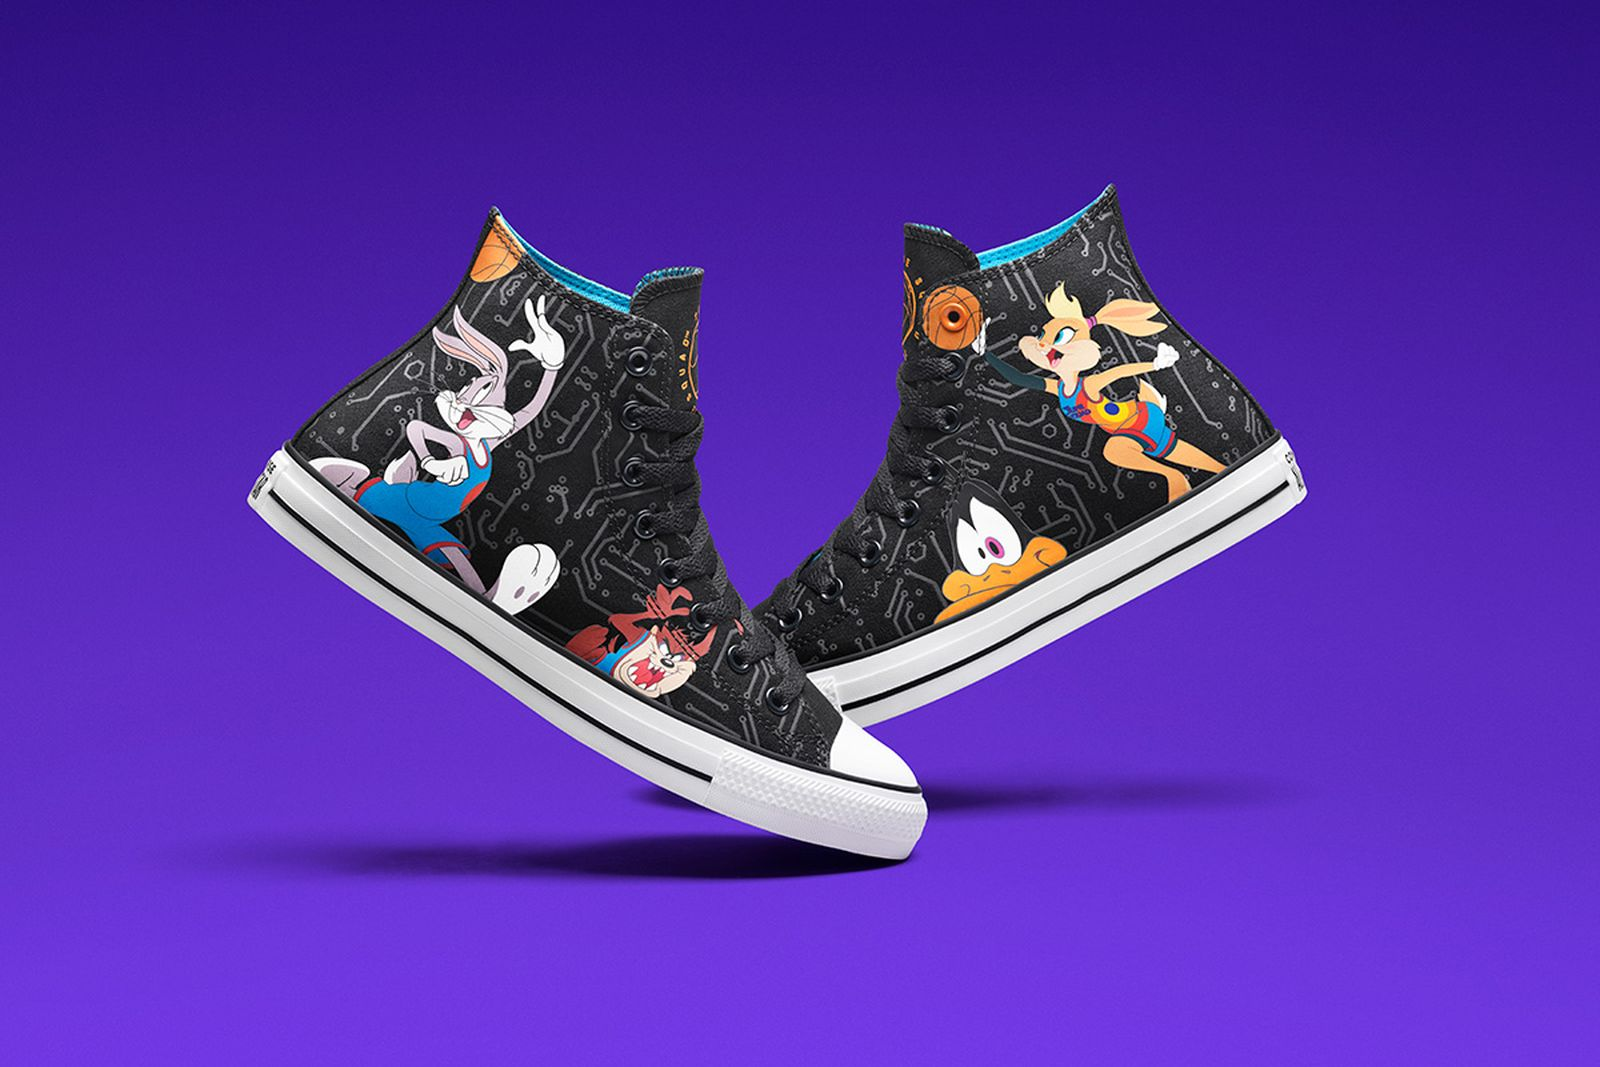 converse-space-jam-2-pack-release-date-price-02